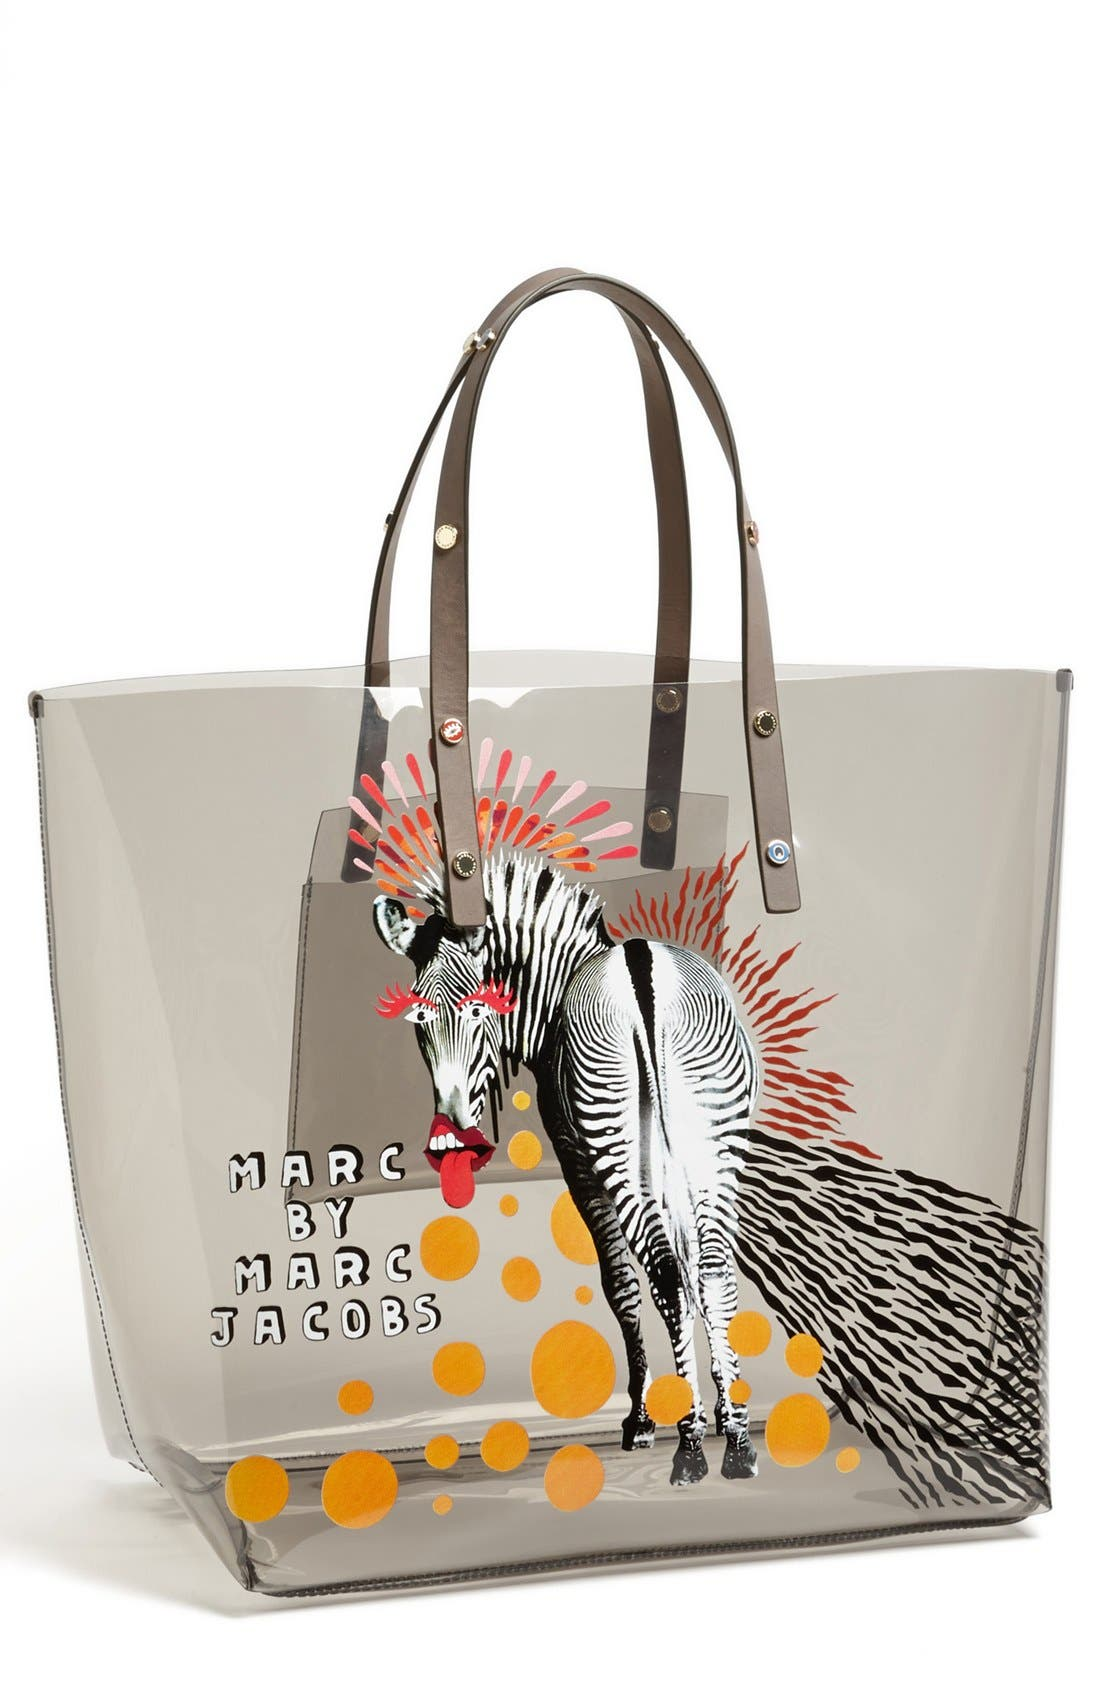 Alternate Image 1 Selected - MARC BY MARC JACOBS 'Zebra' Tote